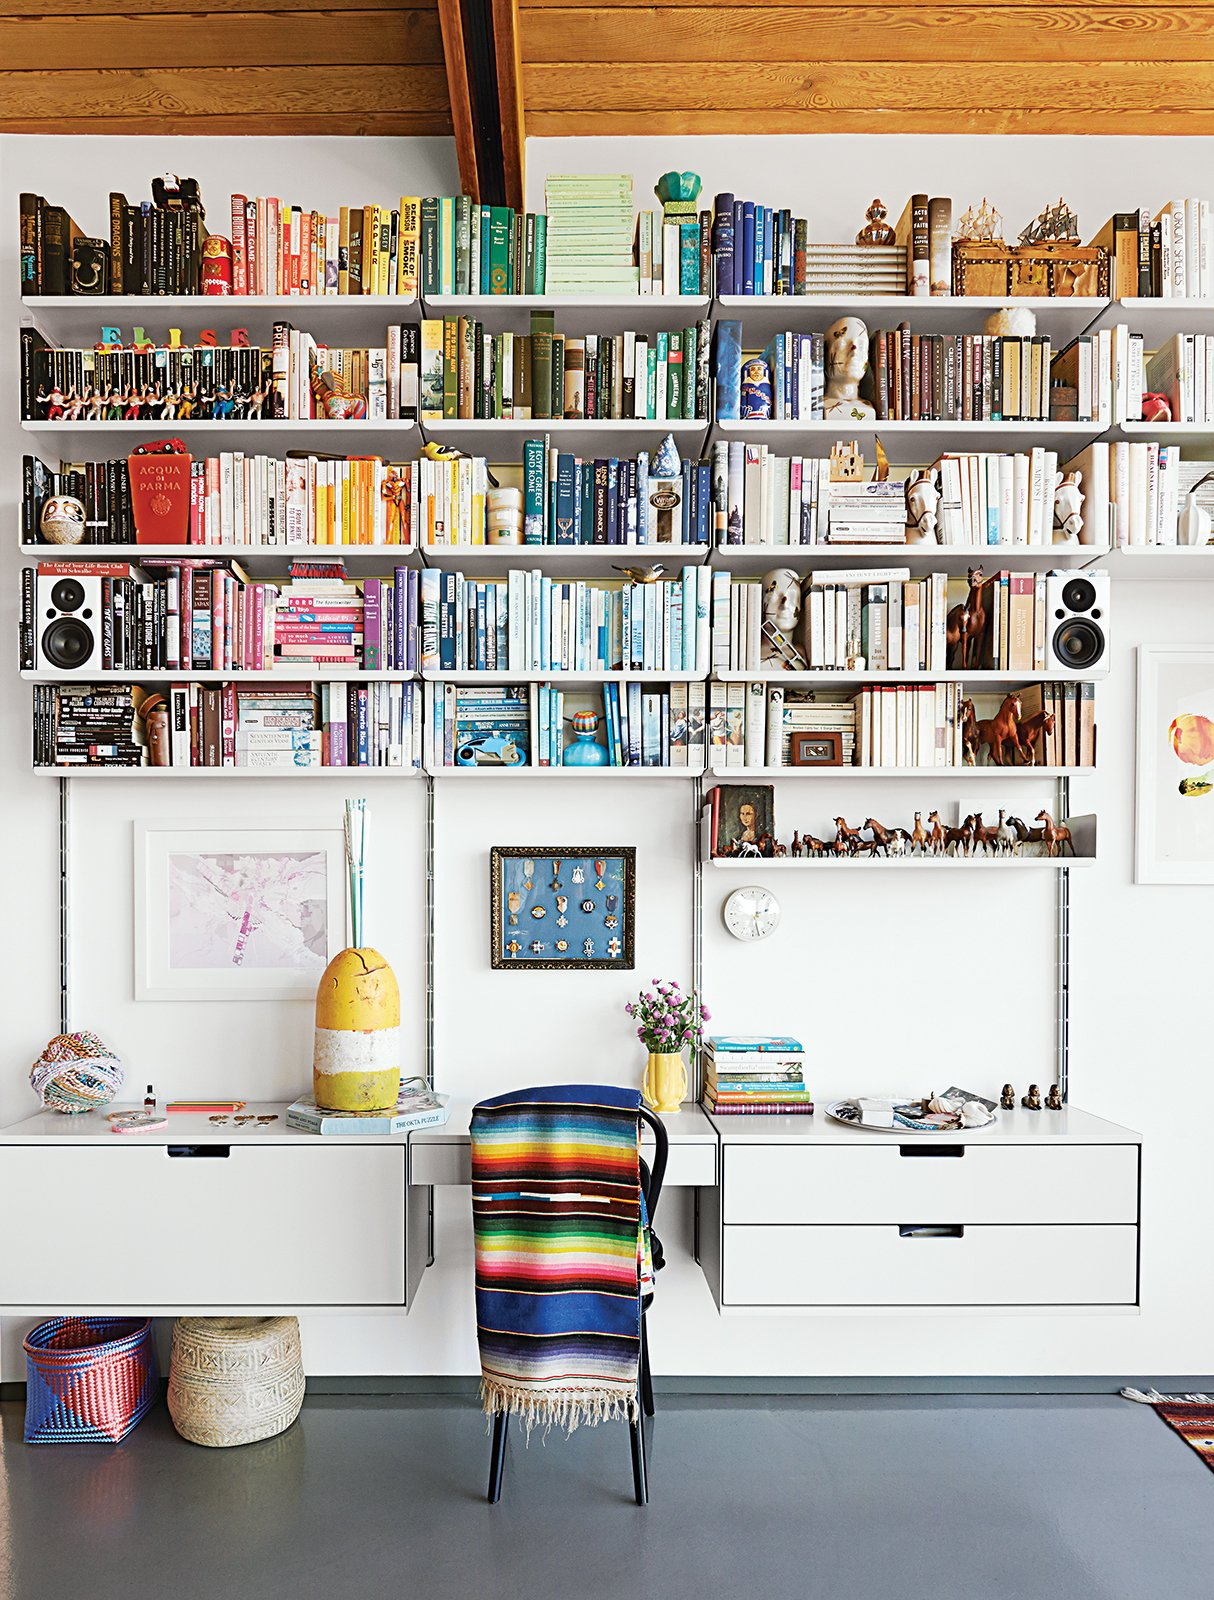 A 606 Universal Shelving System by Dieter Rams for Vitsœ dominates one end of the living room.  Home Libraries that Take Book Storage to the Next Level by Diana Budds from A Midcentury Home Keeps the History Alive